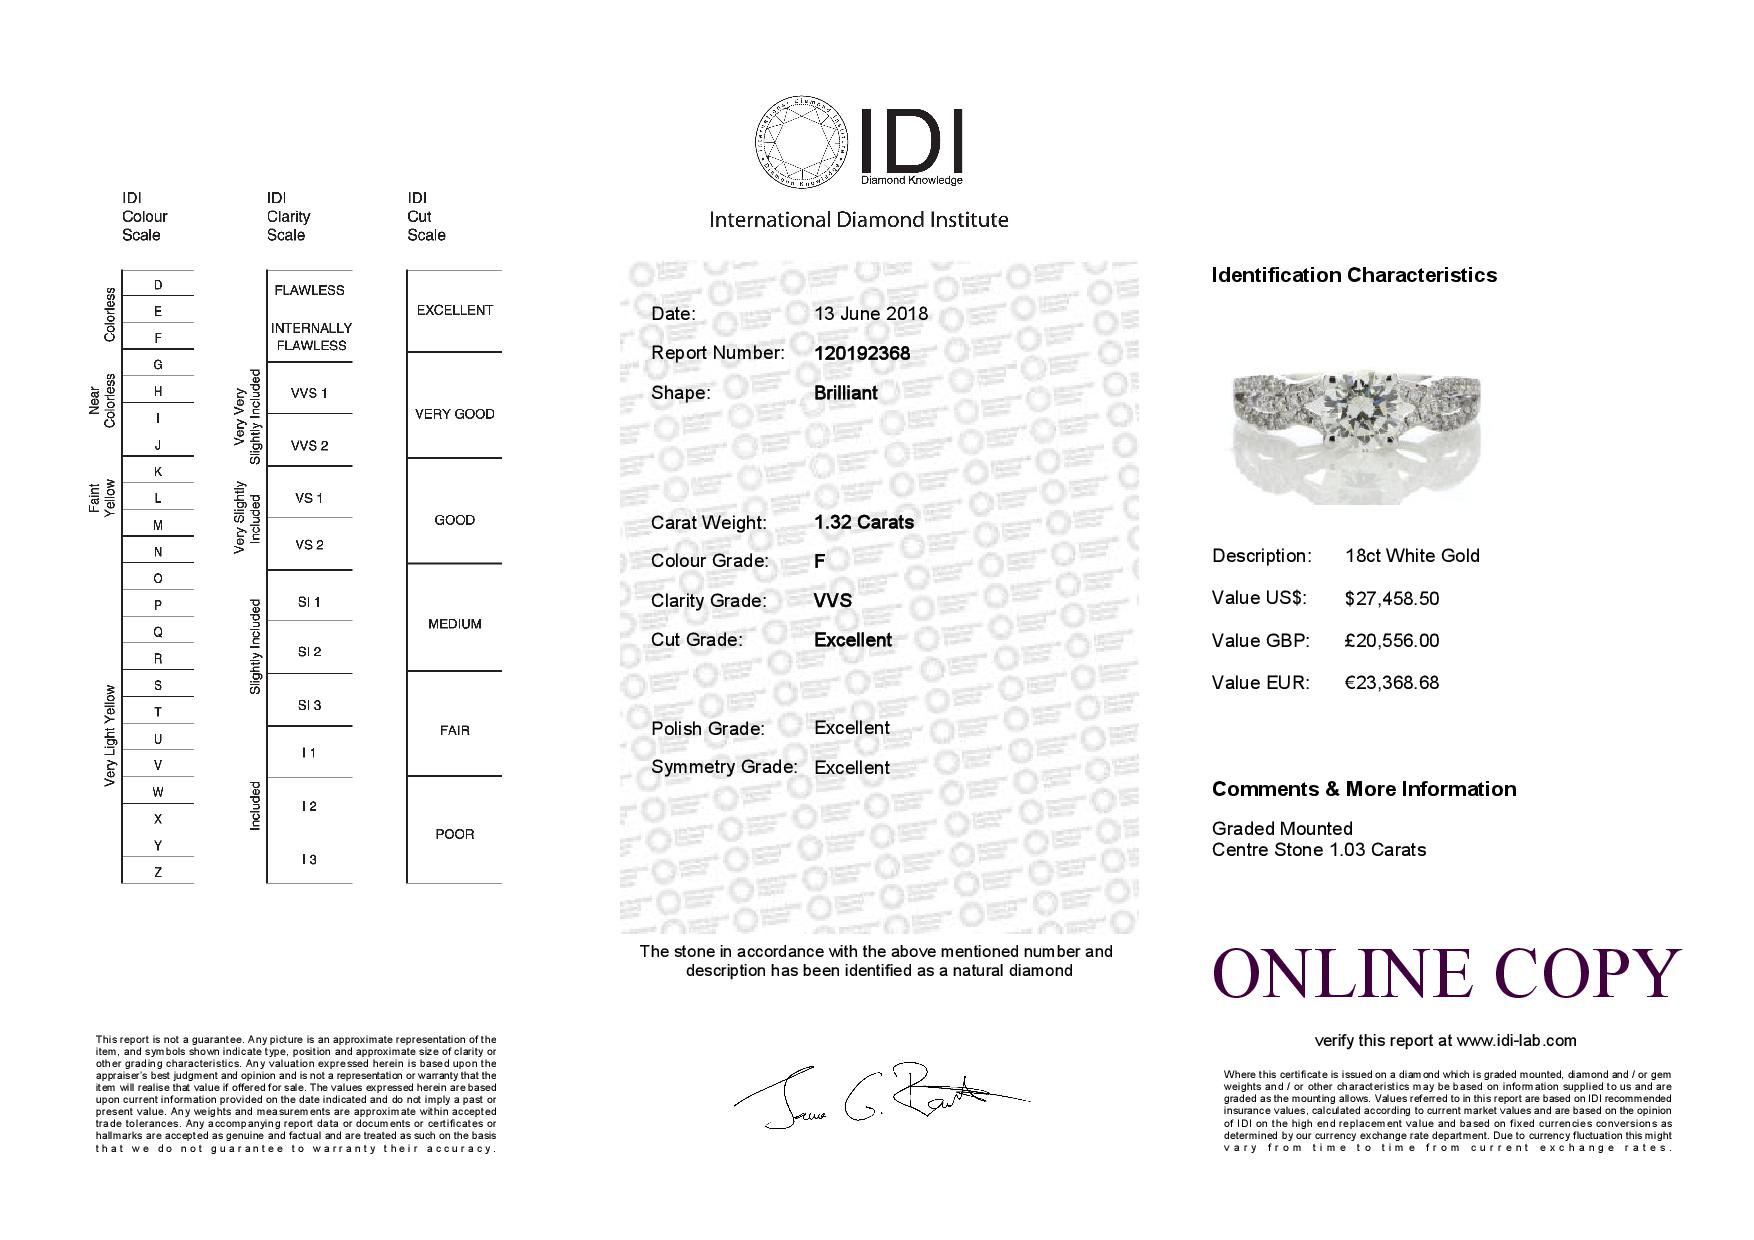 18ct White Gold Claw Set With Stone Set Shoulders Diamond Ring 1.32 Carats - Image 5 of 5